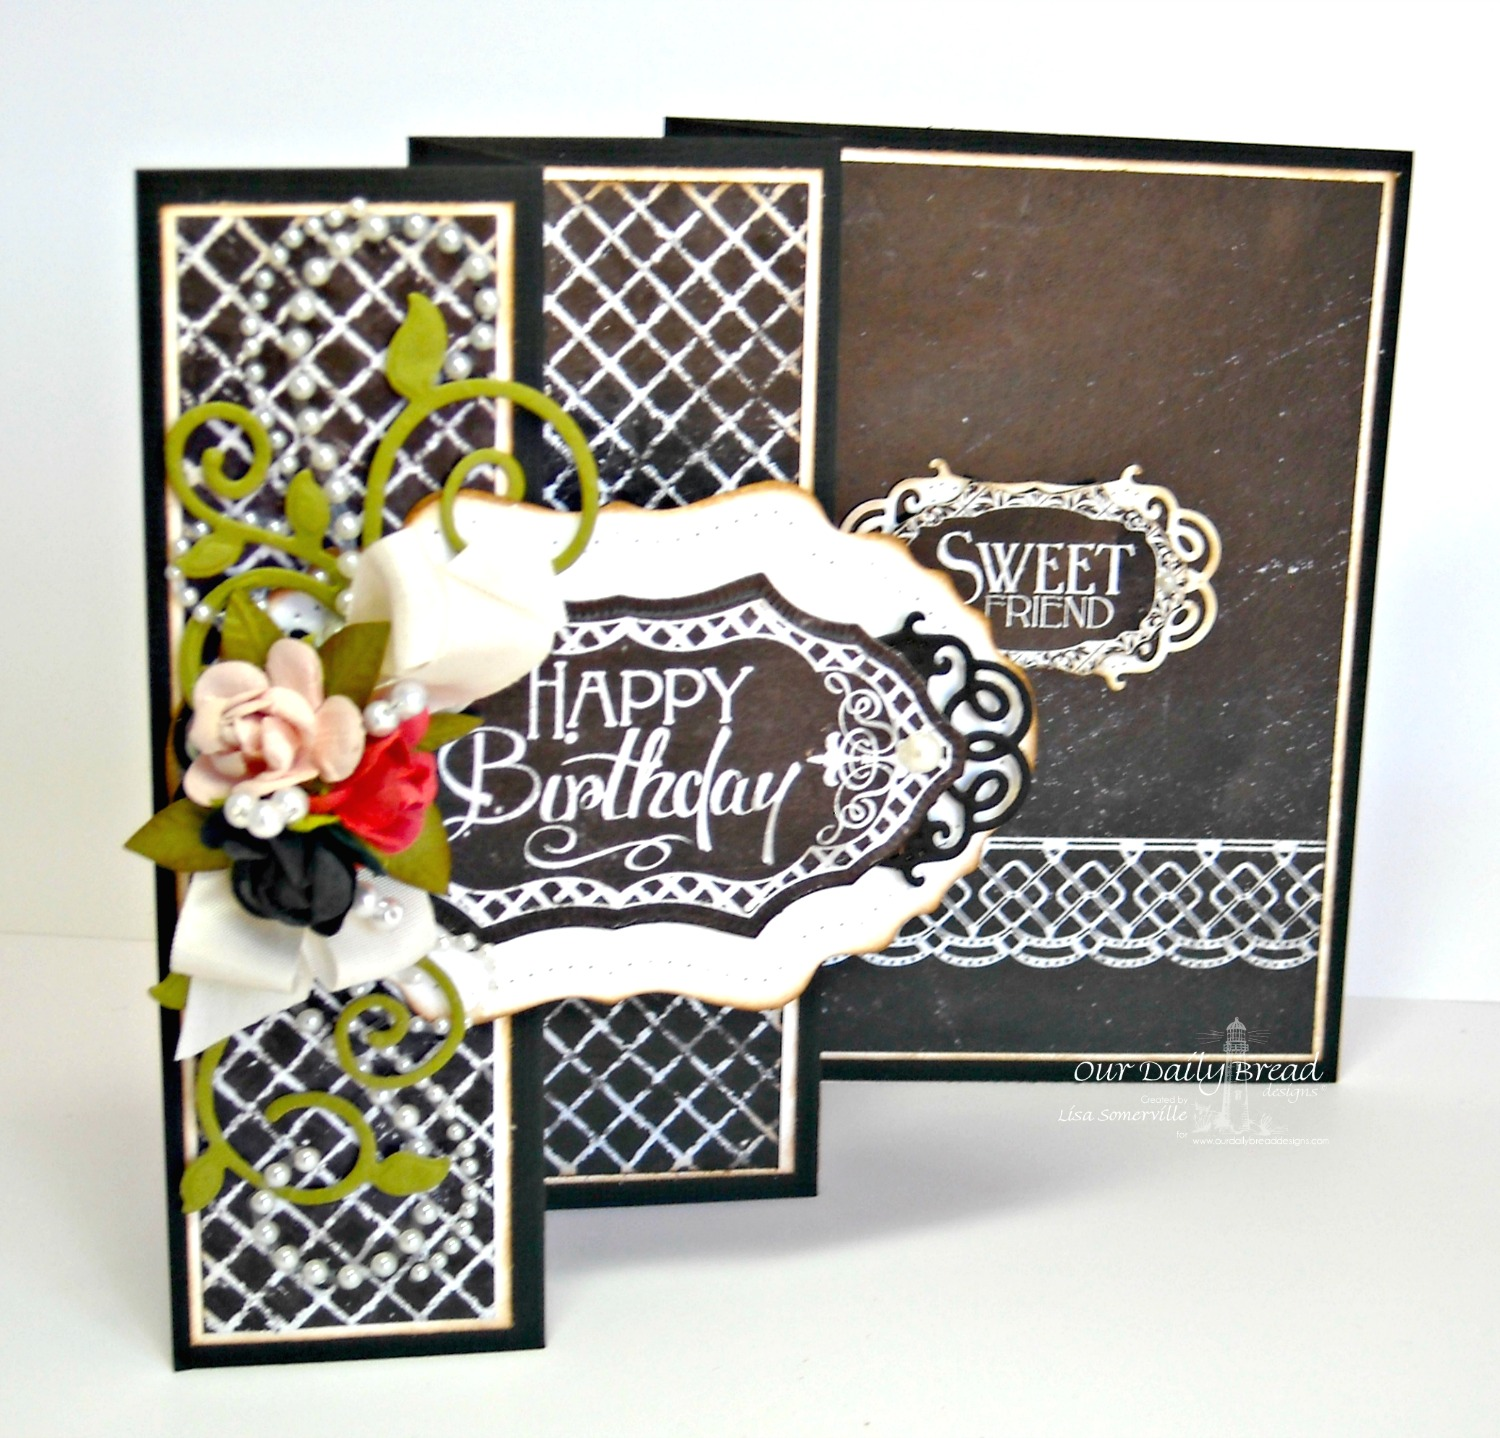 Stamps - Our Daily Bread Designs ODBD Chalkboard Paper Collection, ODBD Custom Fancy Foliage Die, ODBD Custom Vintage Flourish Pattern Die